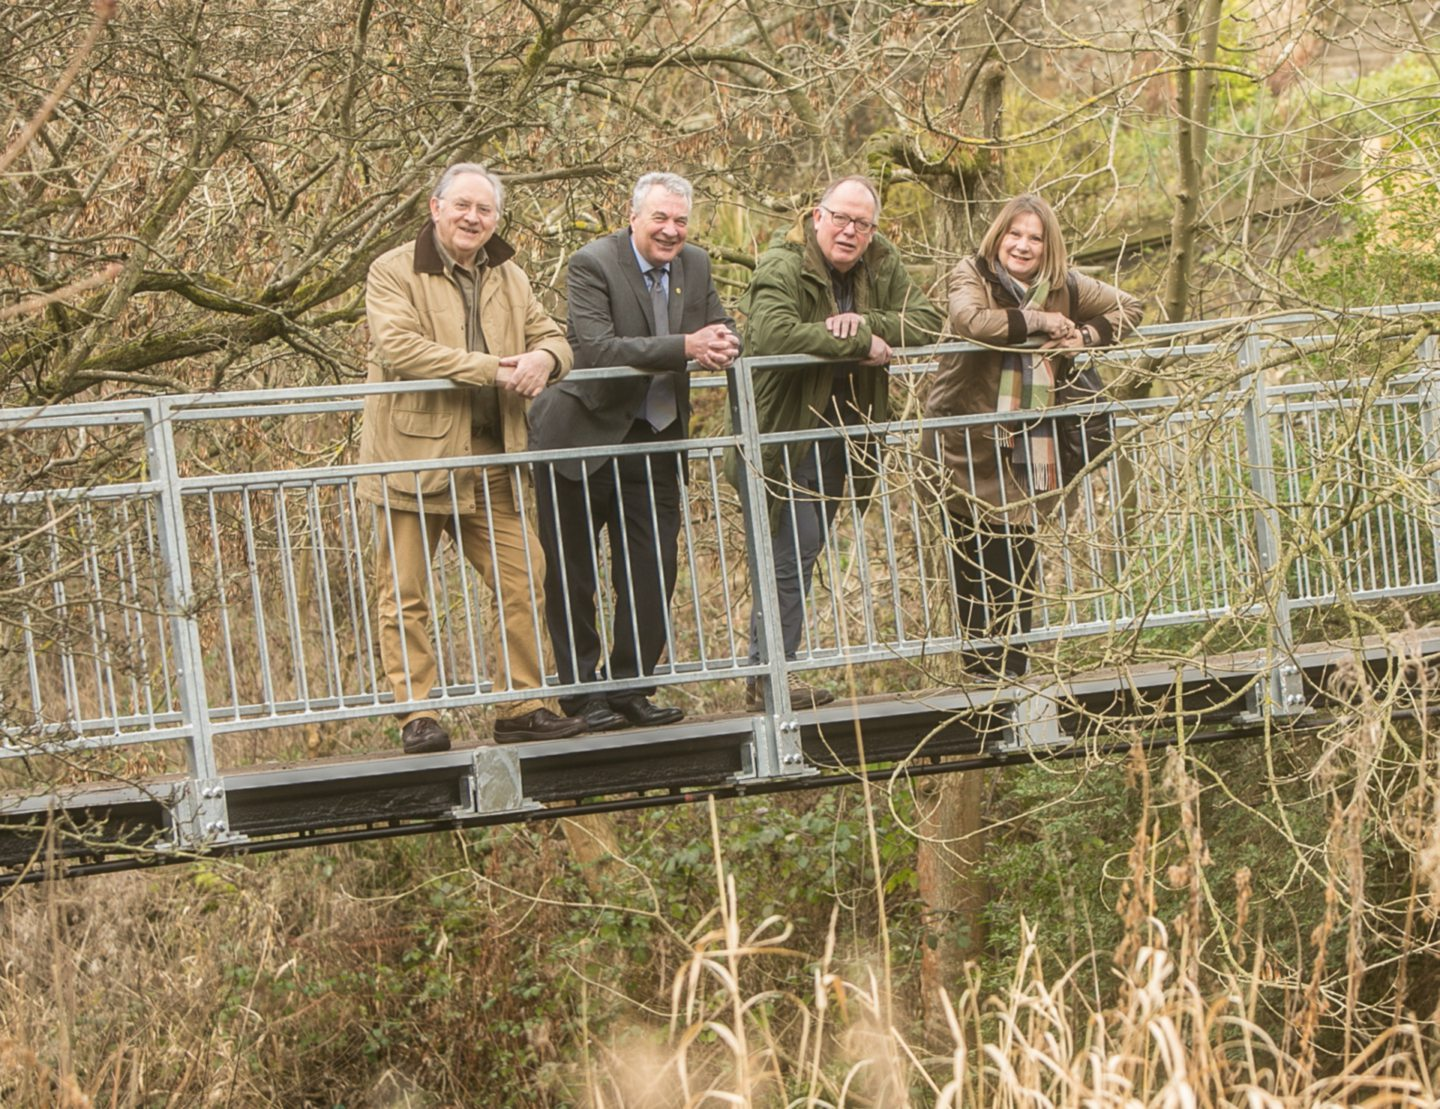 Ken Caldwell, second from left, at the River Leven.